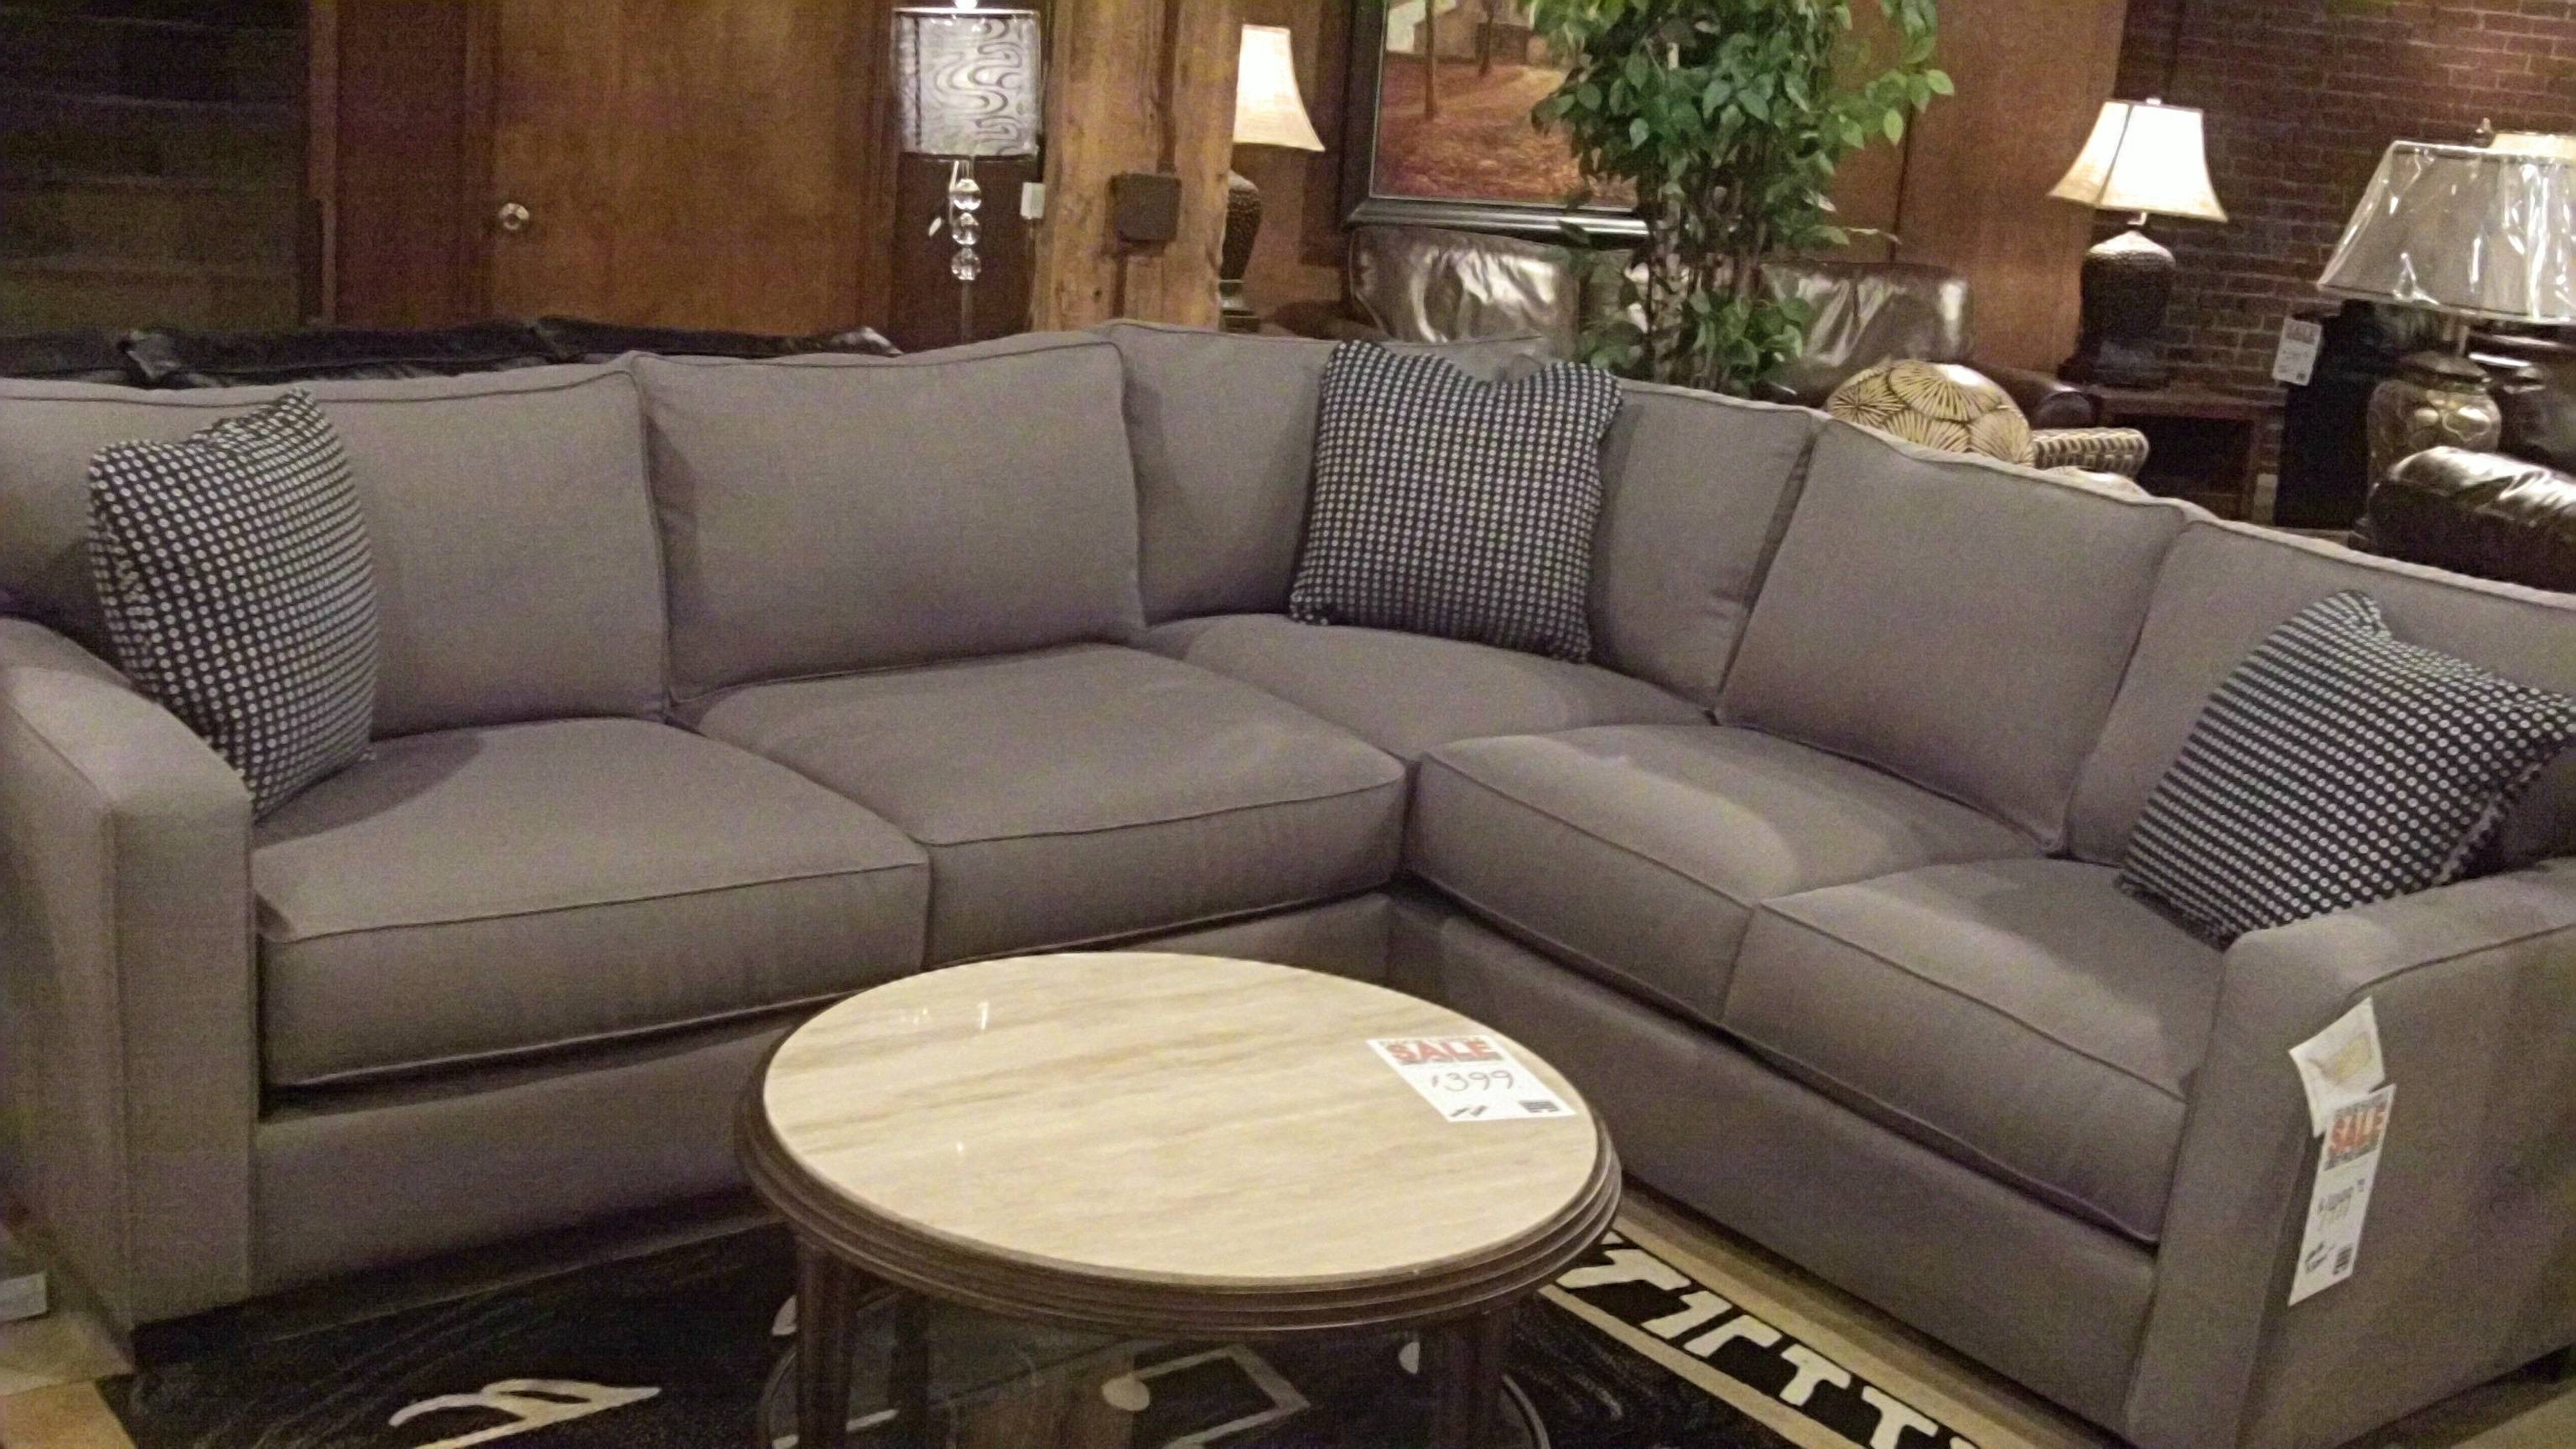 Leather Sectional Sofas San Diego – Slimsectionalsofas For Sectional Sofa San Diego (View 15 of 30)